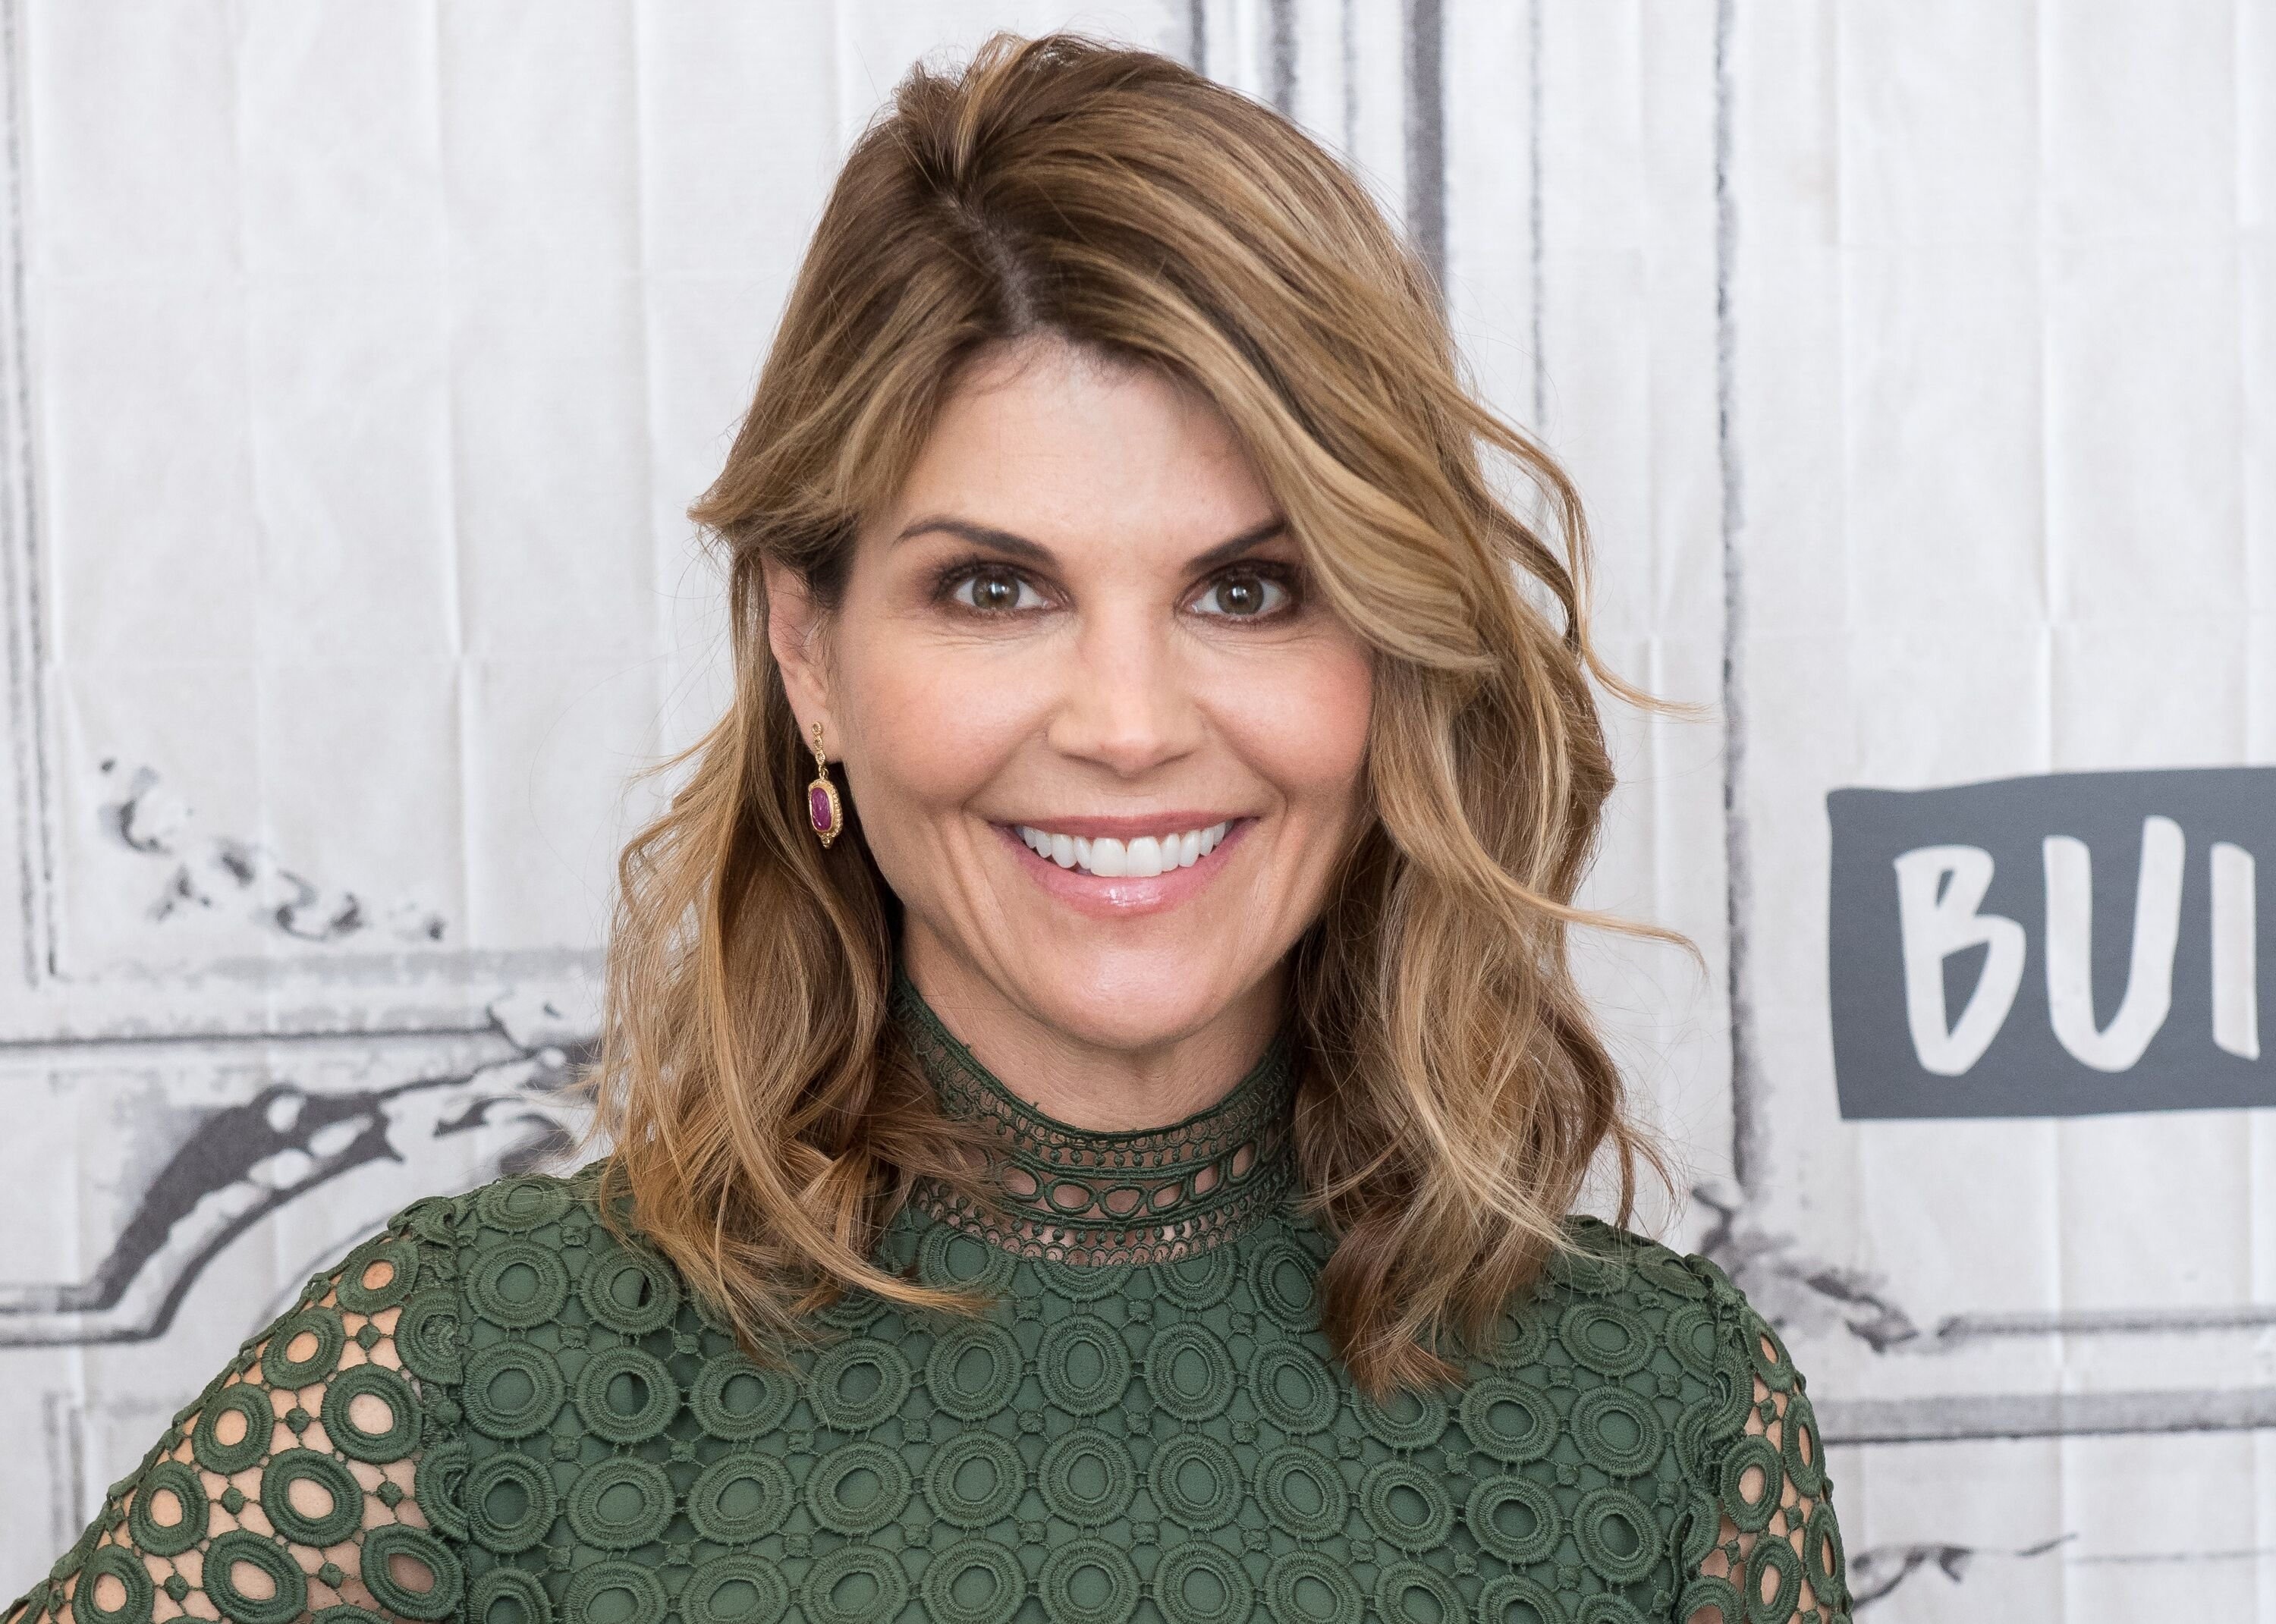 Lori Loughlin at Build Studio on February 15, 2018, in New York City. | Source: Getty Images